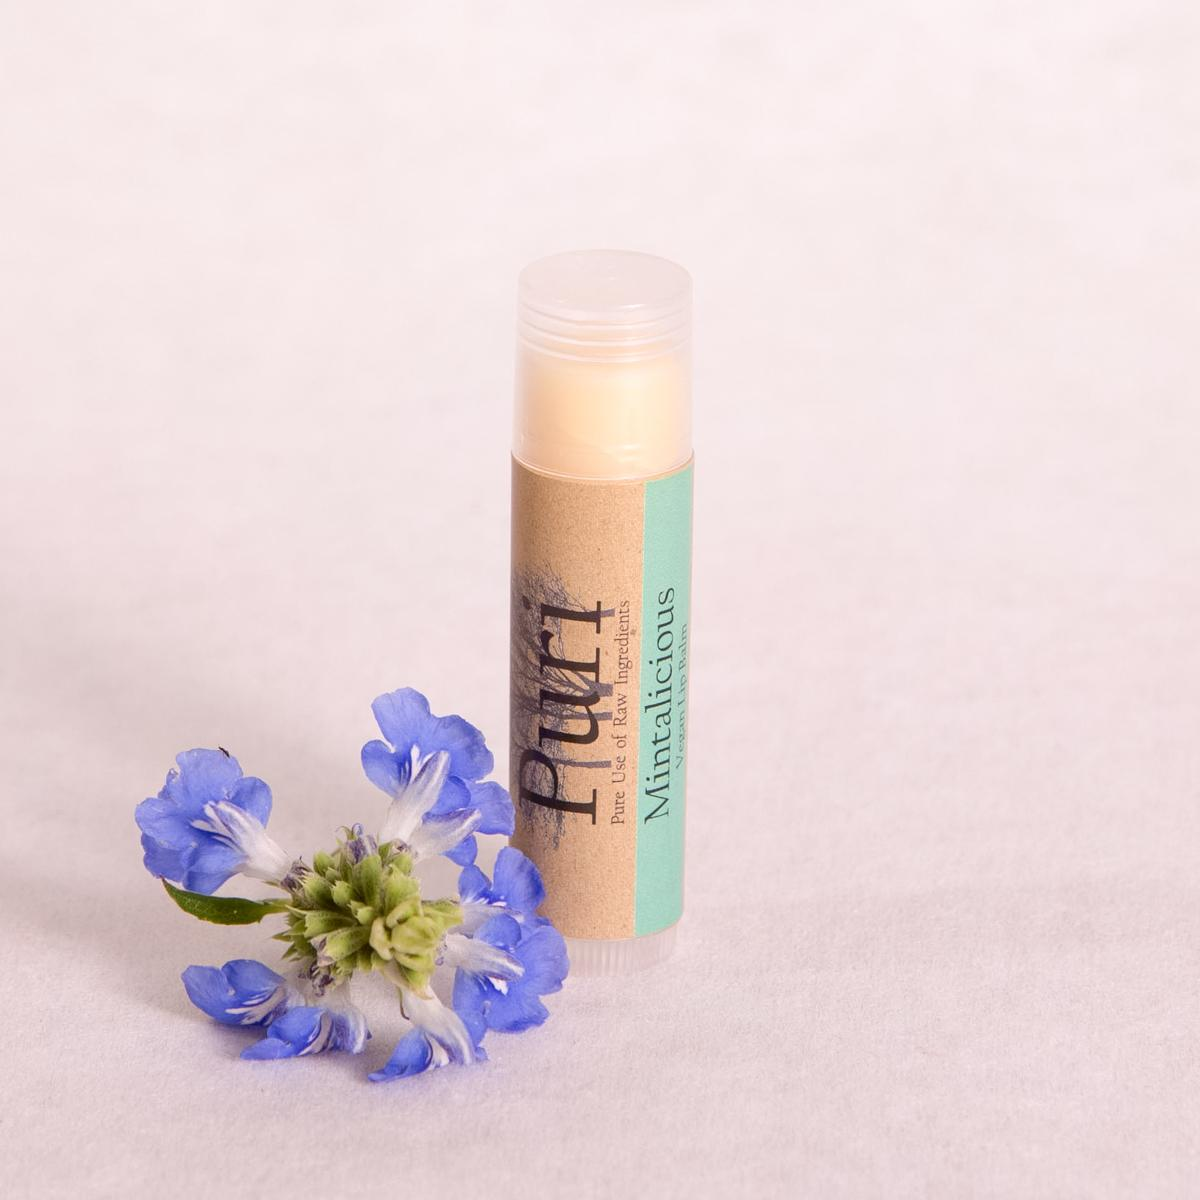 'Mintalicious' Natural Lip Balm - 5ml - Lip Balm - Throw Some Seeds - Australian gardening gifts and eco products online!